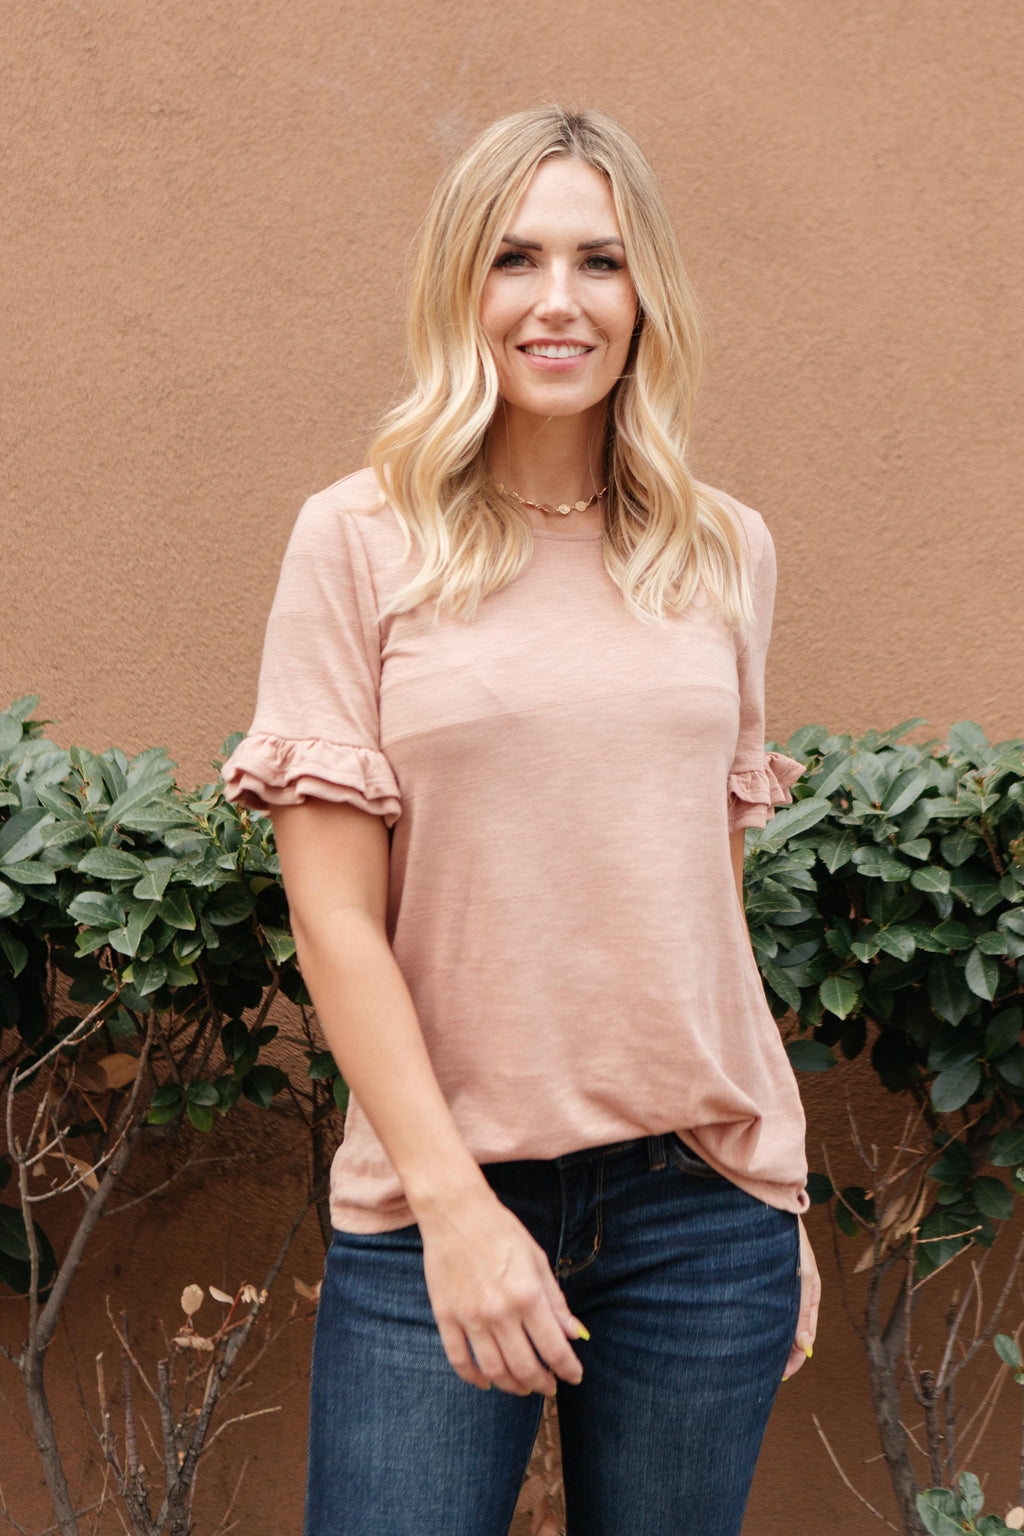 Rosy Ruffled Sleeve Top-10-15-2020, 10-23-2020, 1XL, 2XL, 3XL, BFCM2020, Bonus, Group A, Group B, Group C, Group D, Group U, Group V, Group X, Group Y, Group Z, Large, Made in the USA, Medium, Plus, Small, Tops, XL, XS-Womens Artisan USA American Made Clothing Accessories